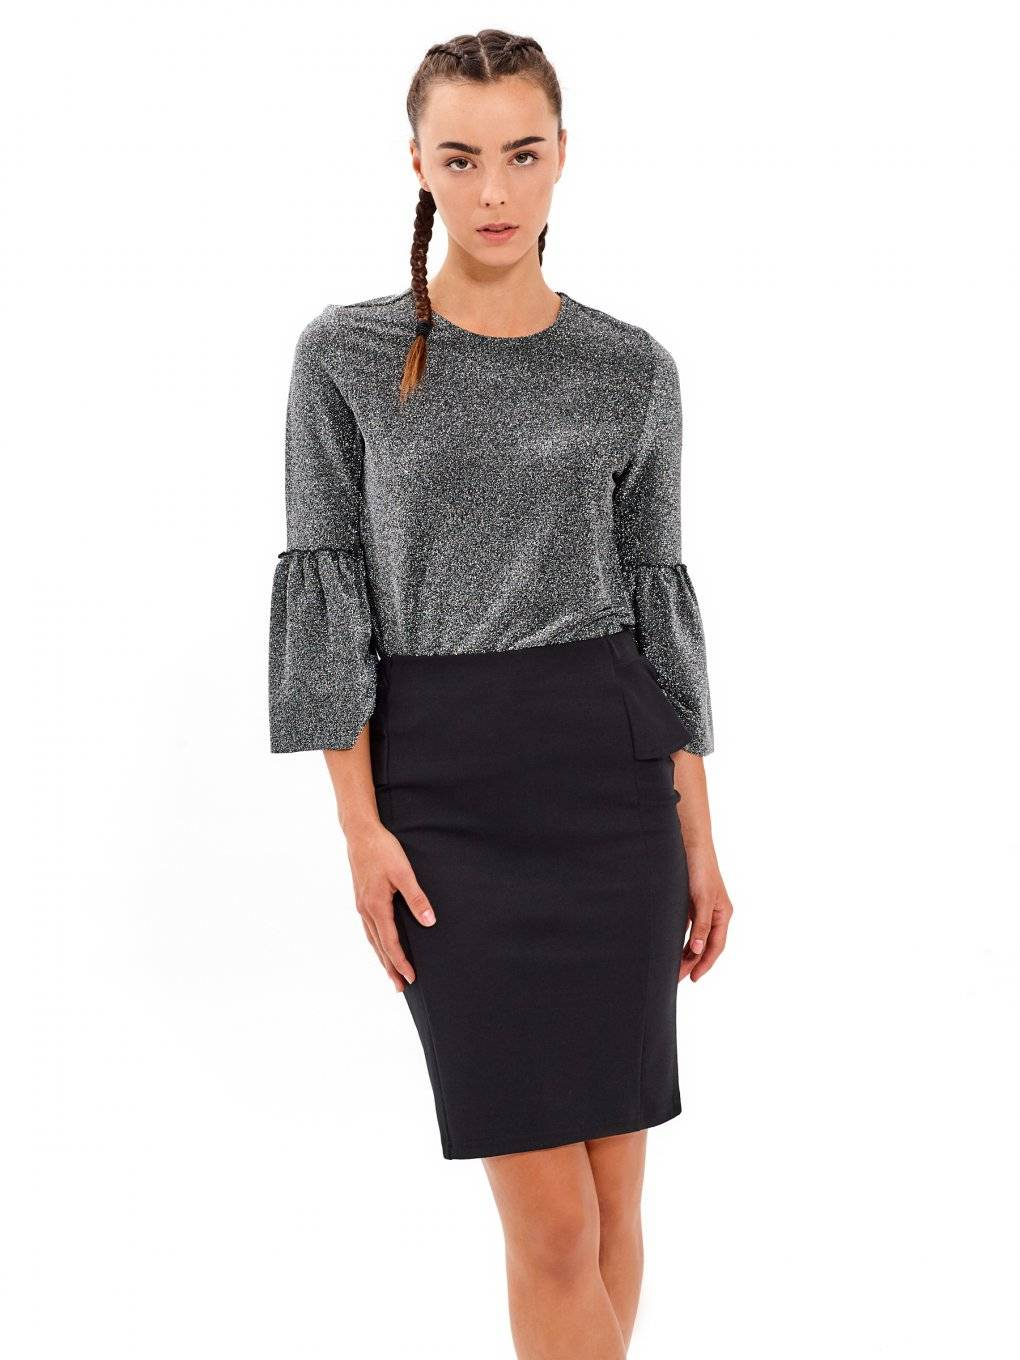 Top with metallic fibre and ruffle sleeve